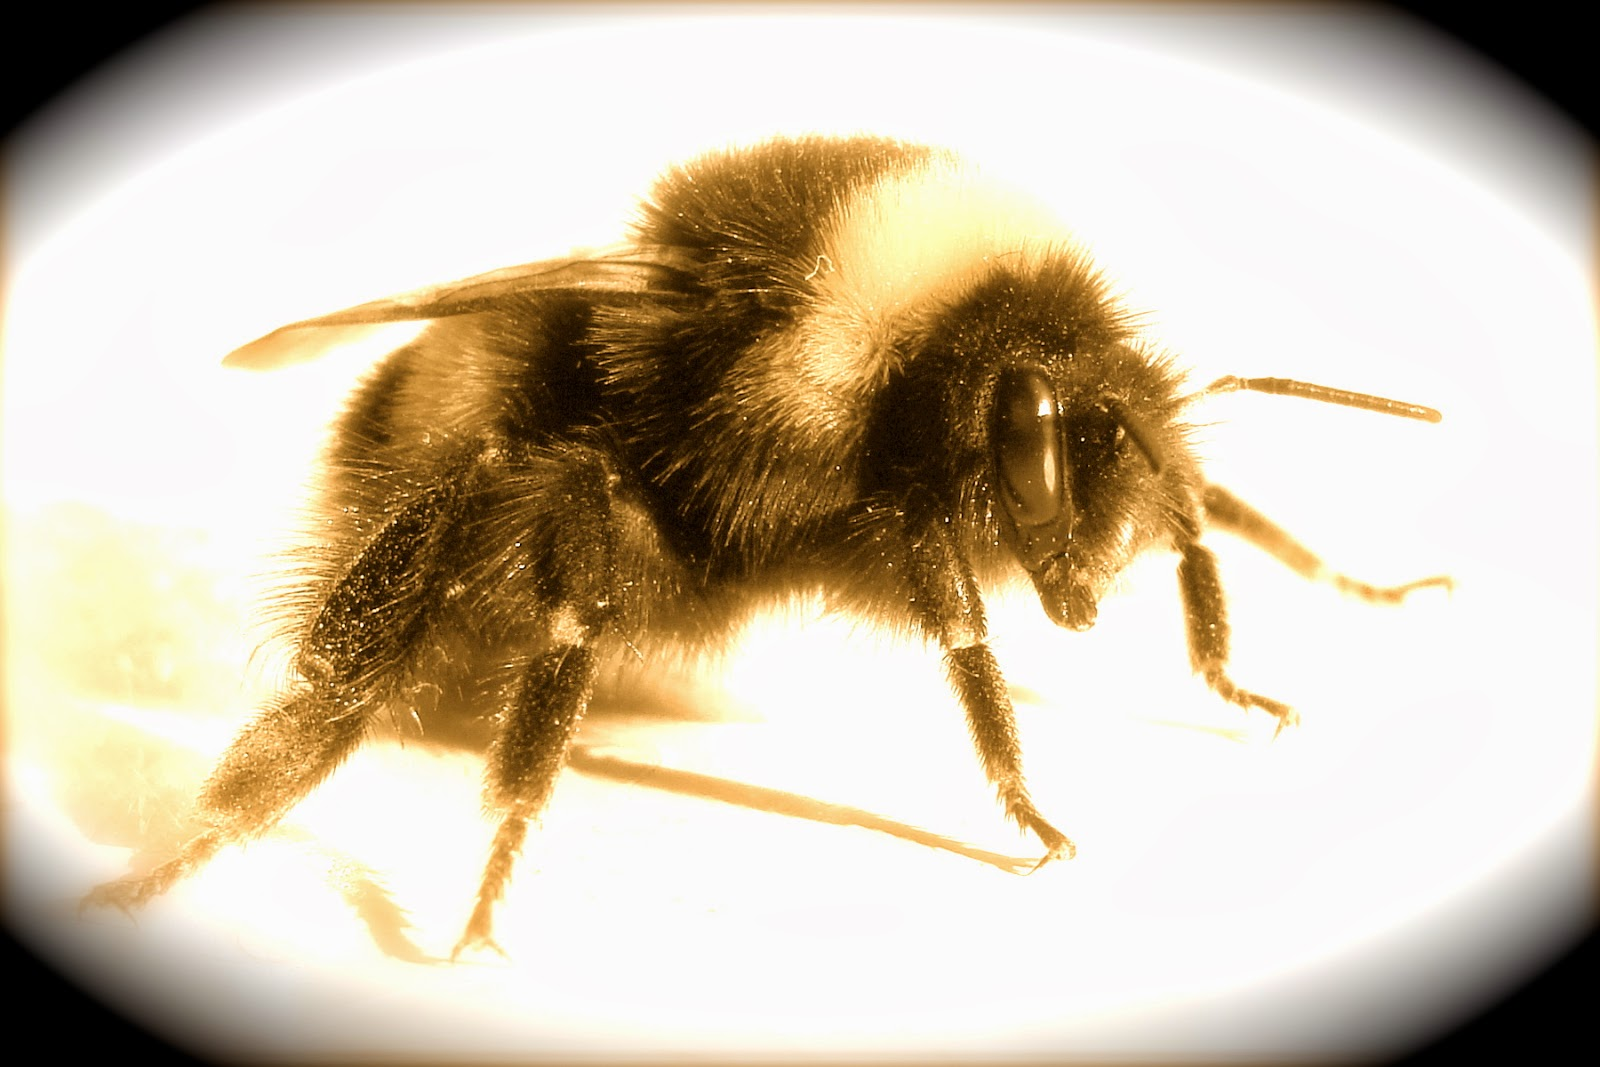 NEW ENGLAND FOLKLORE: Moll Ellis's Bee: The Witch's Familiar